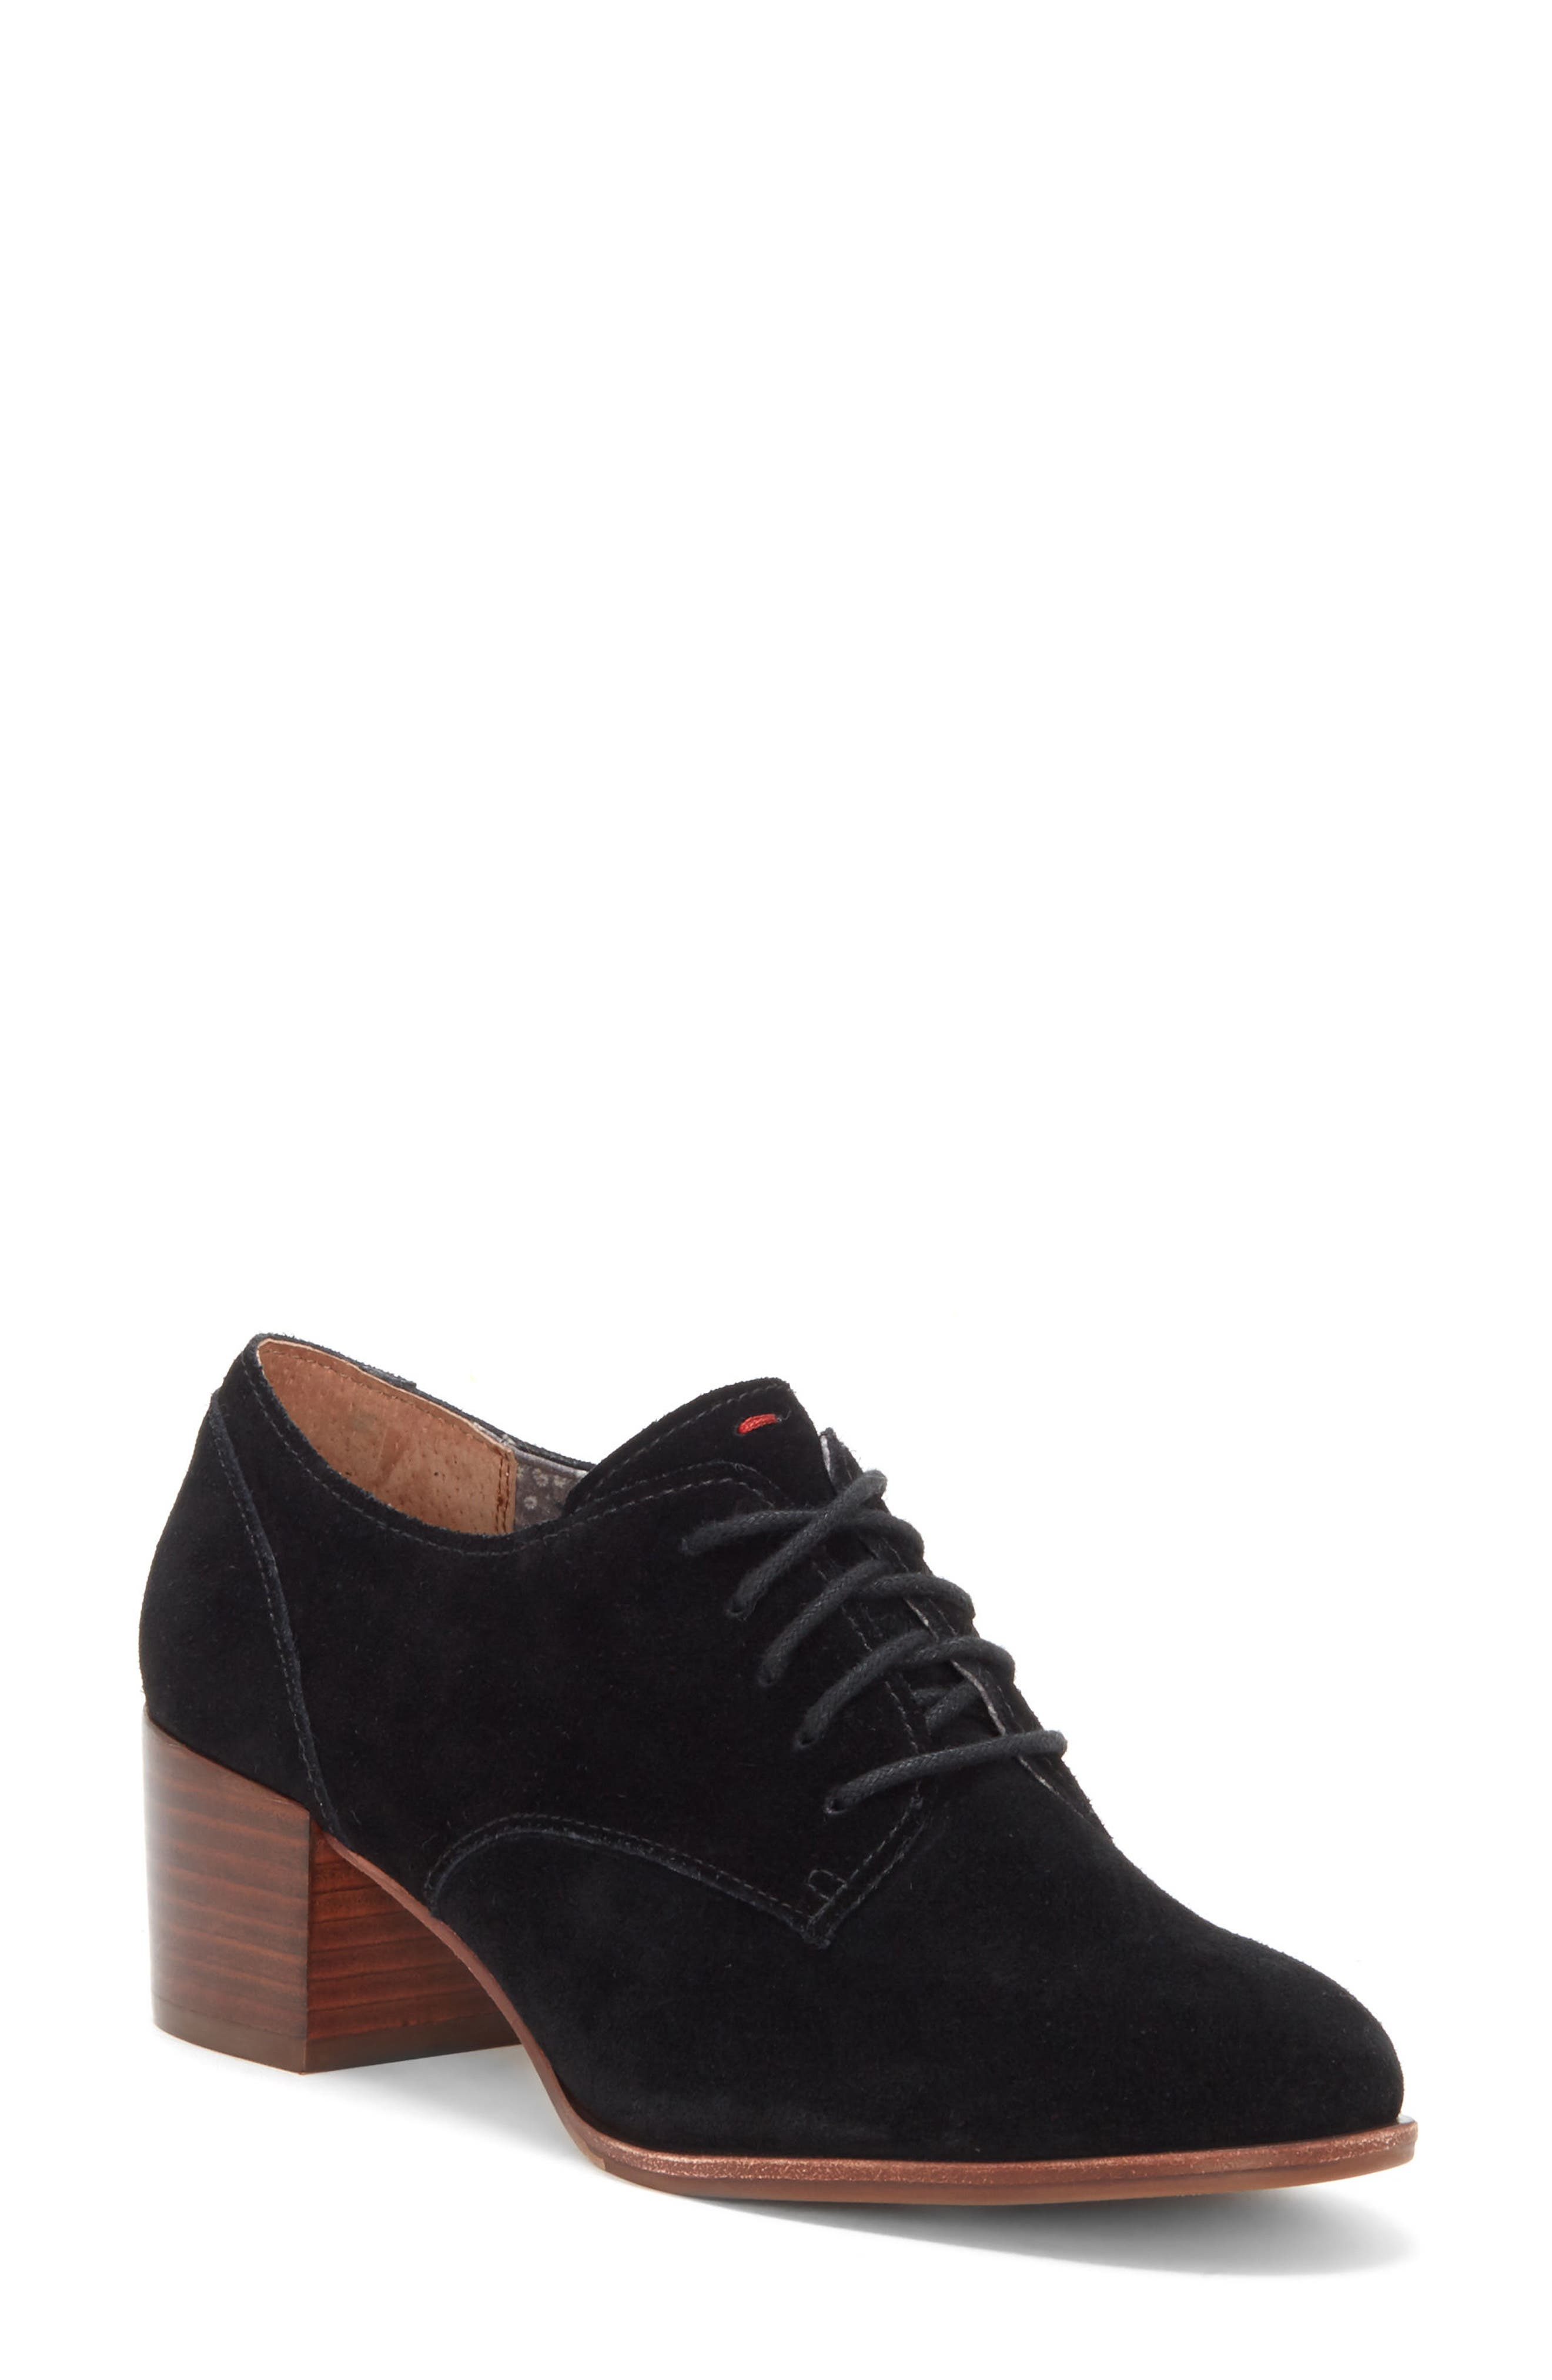 Phoebe Oxford Pump,                         Main,                         color, 001